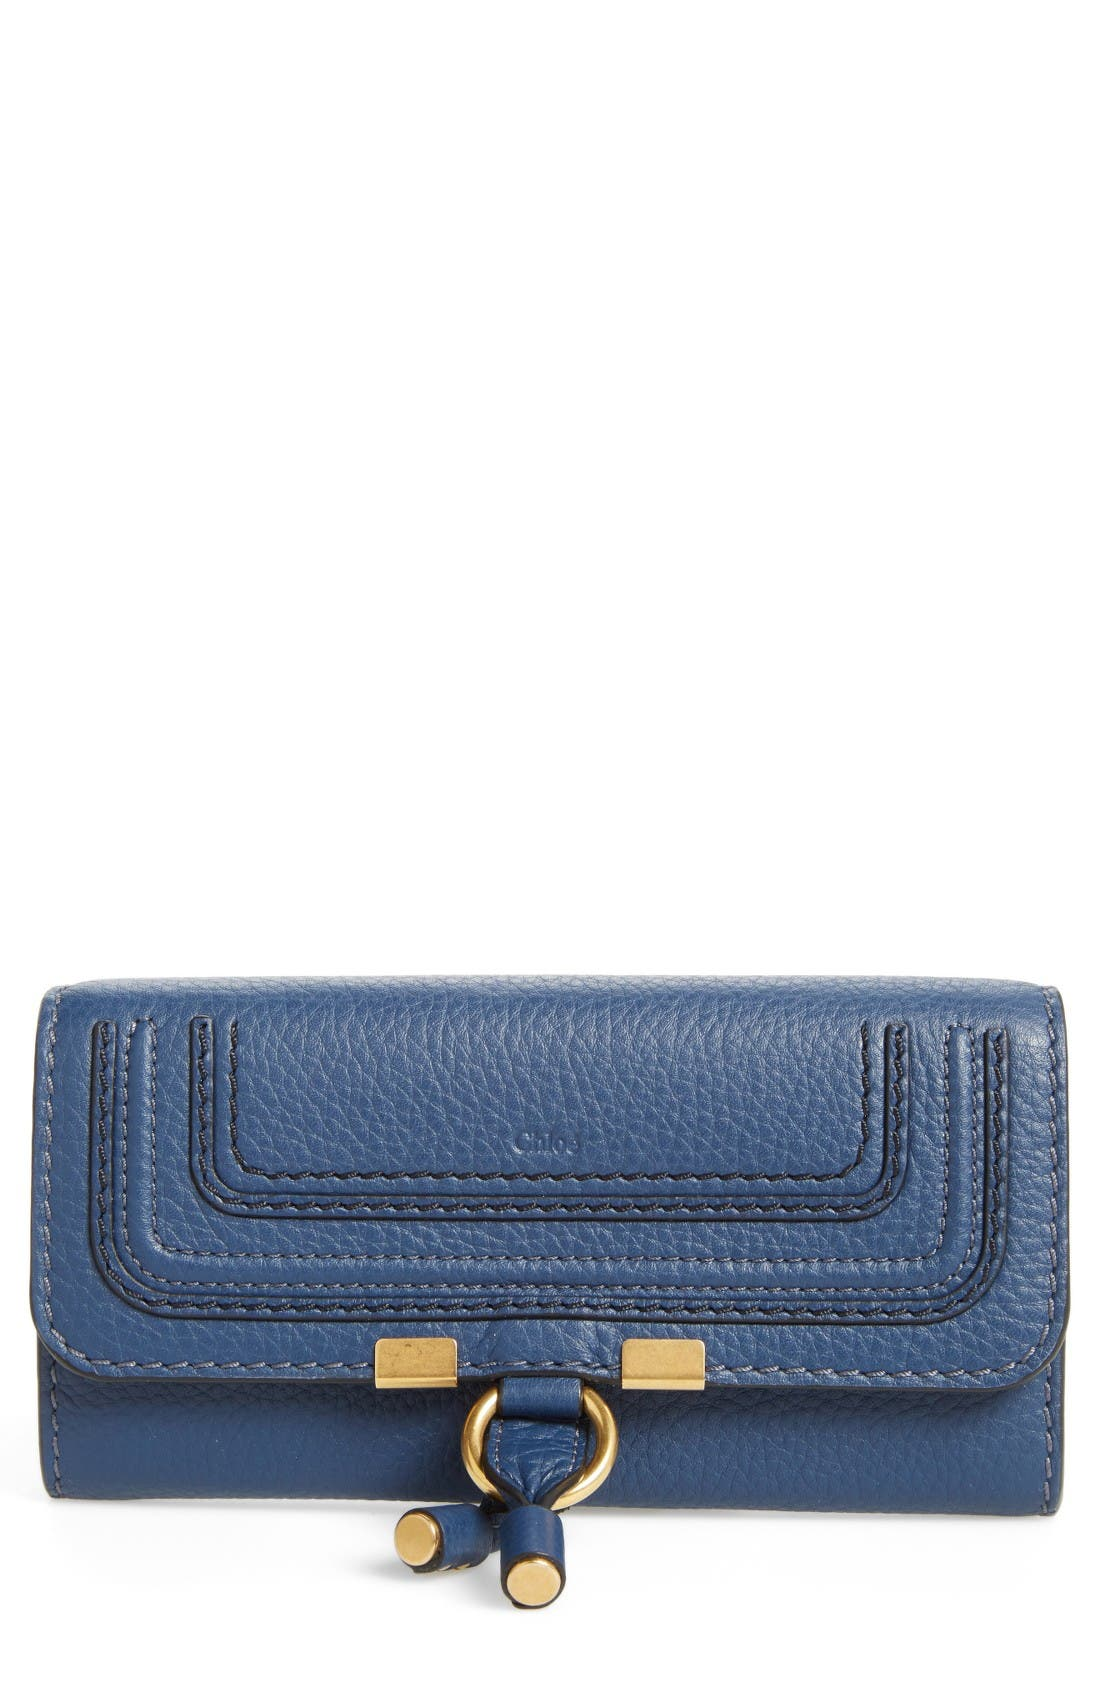 Alternate Image 1 Selected - Chloé 'Marcie - Long' Leather Flap Wallet